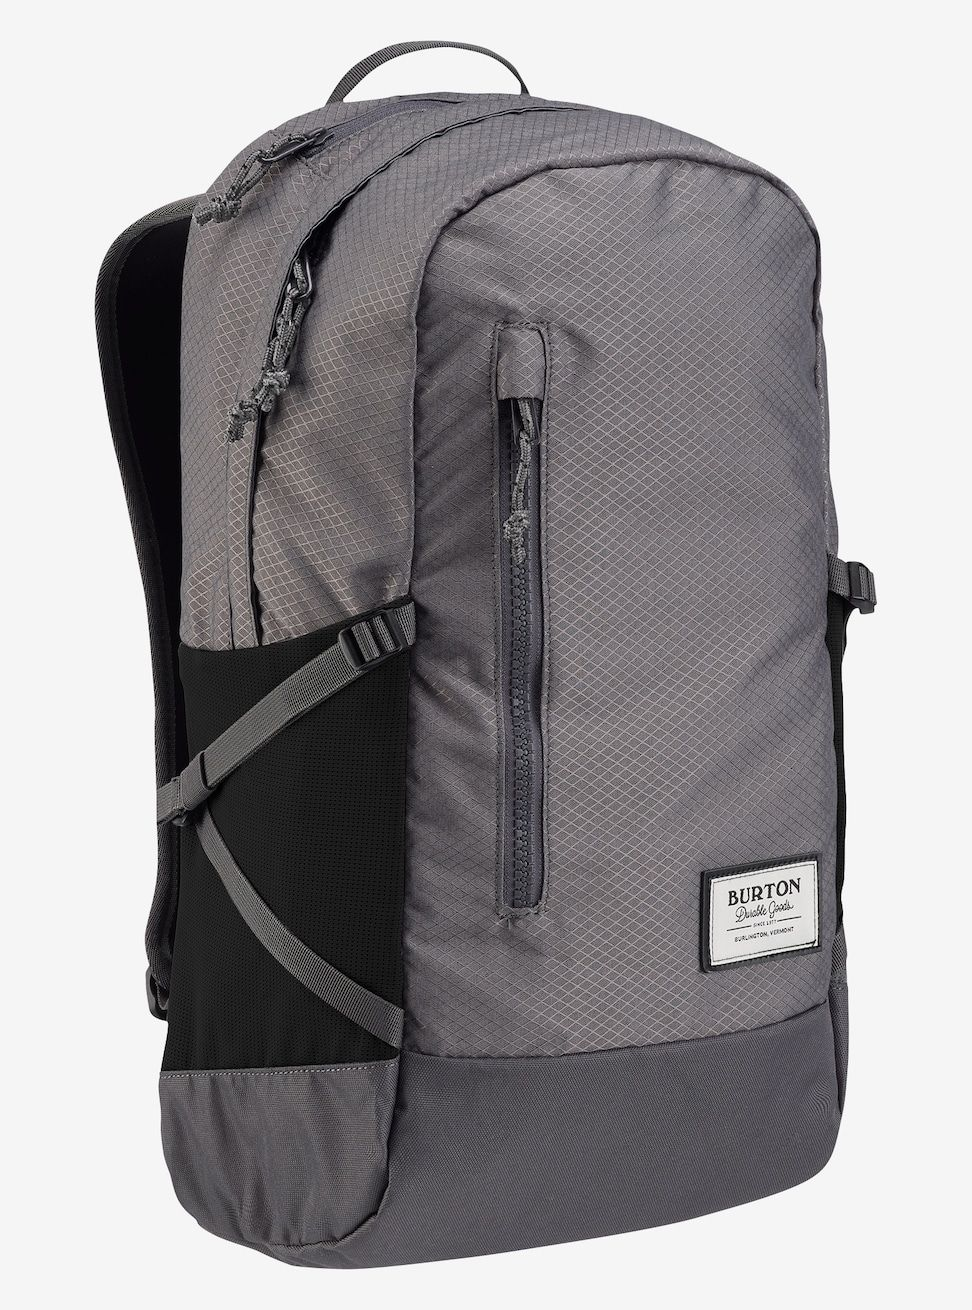 85912518f6 Shop the Burton Prospect Backpack along with more backpack